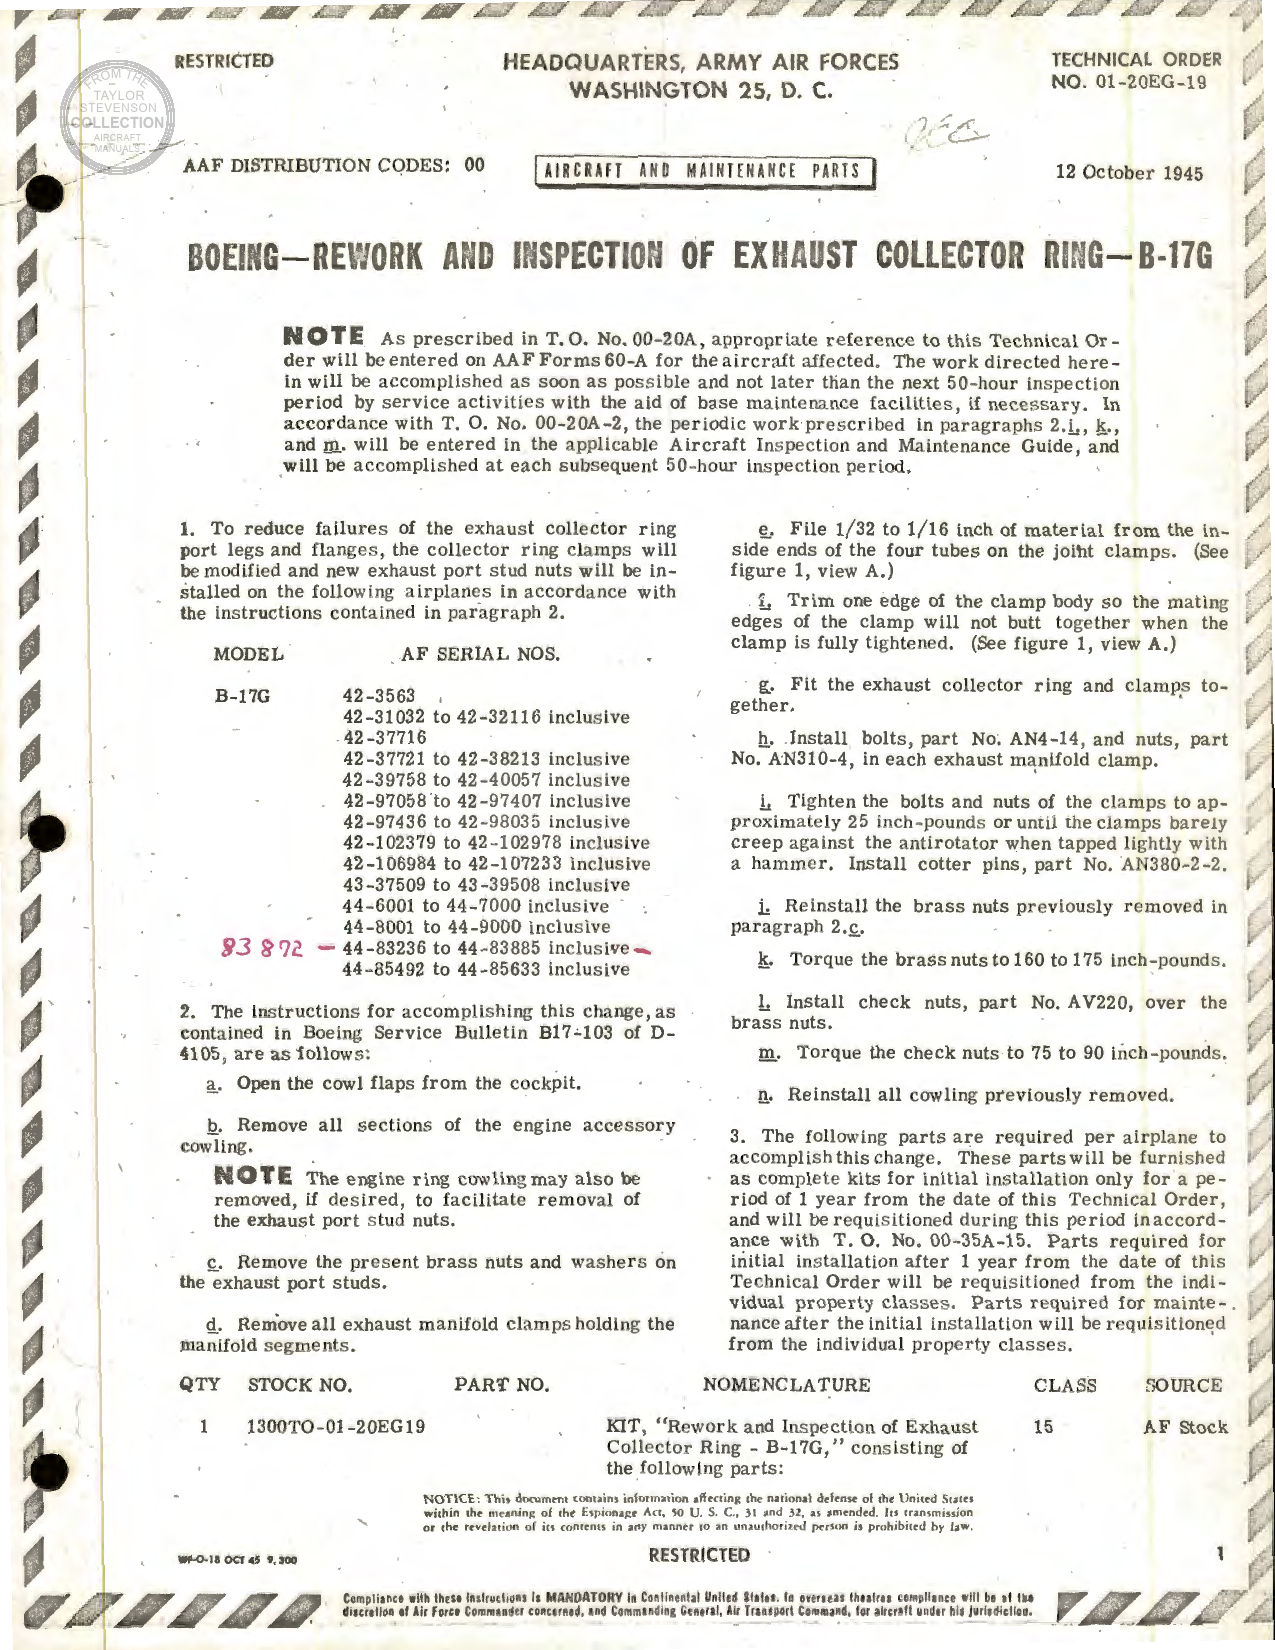 Sample page 1 from AirCorps Library document: Rework and Inspection of Exhaust Collector Ring for B-17G